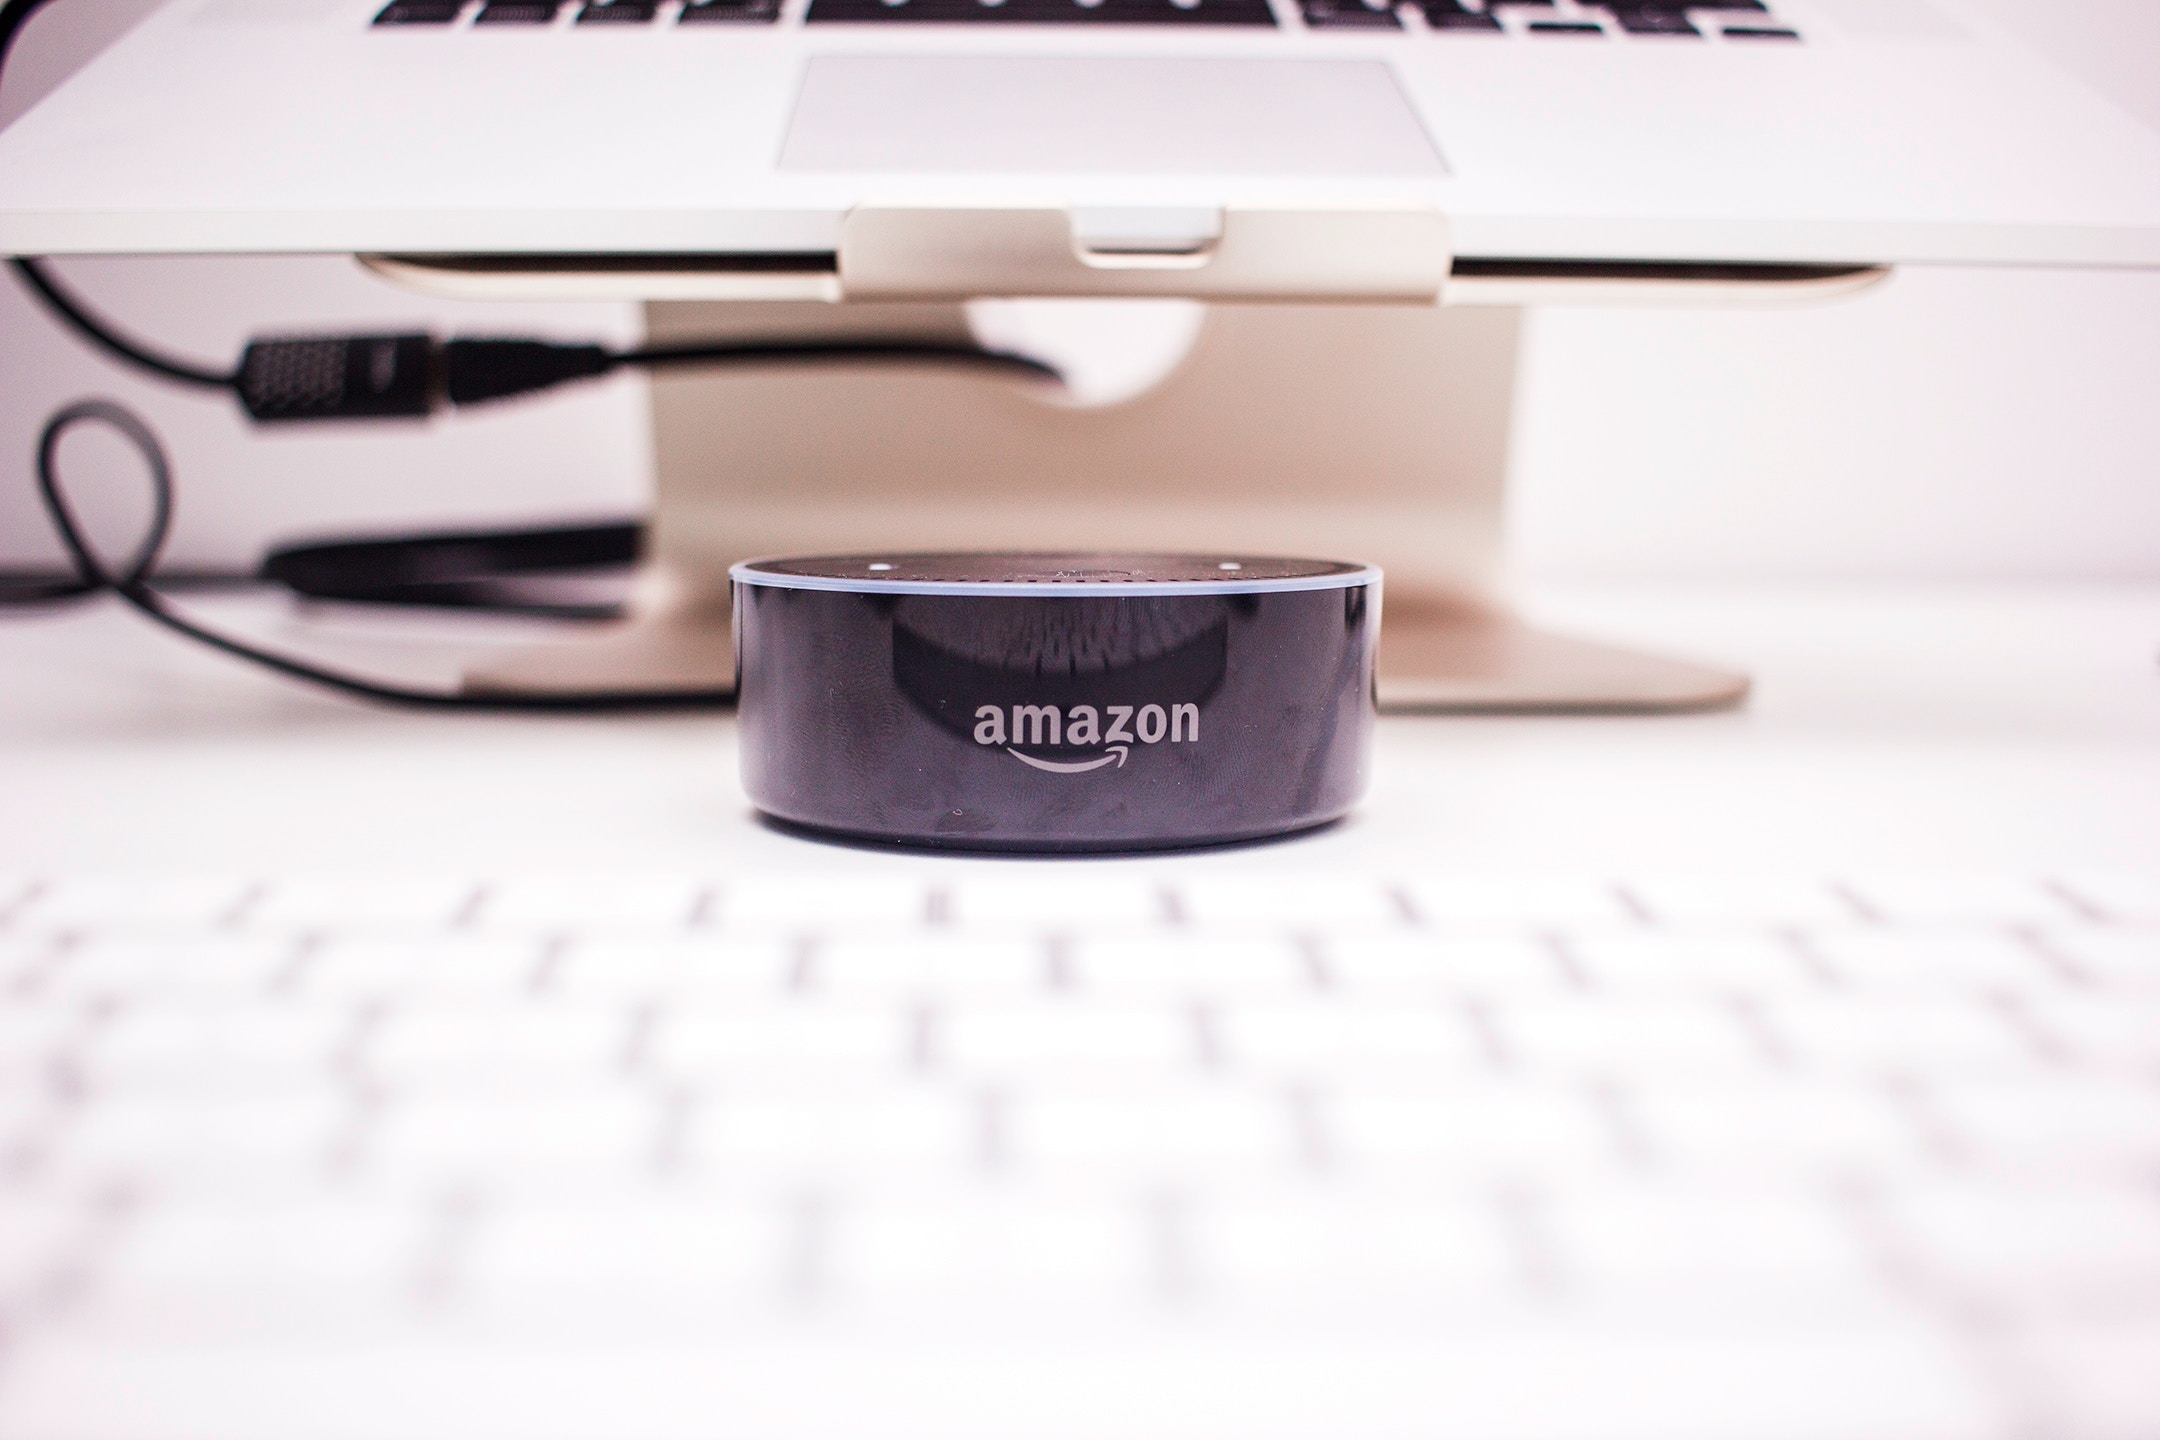 Amazon Alexa, known simply as Alexa, is a virtual assistant developed by Amazon